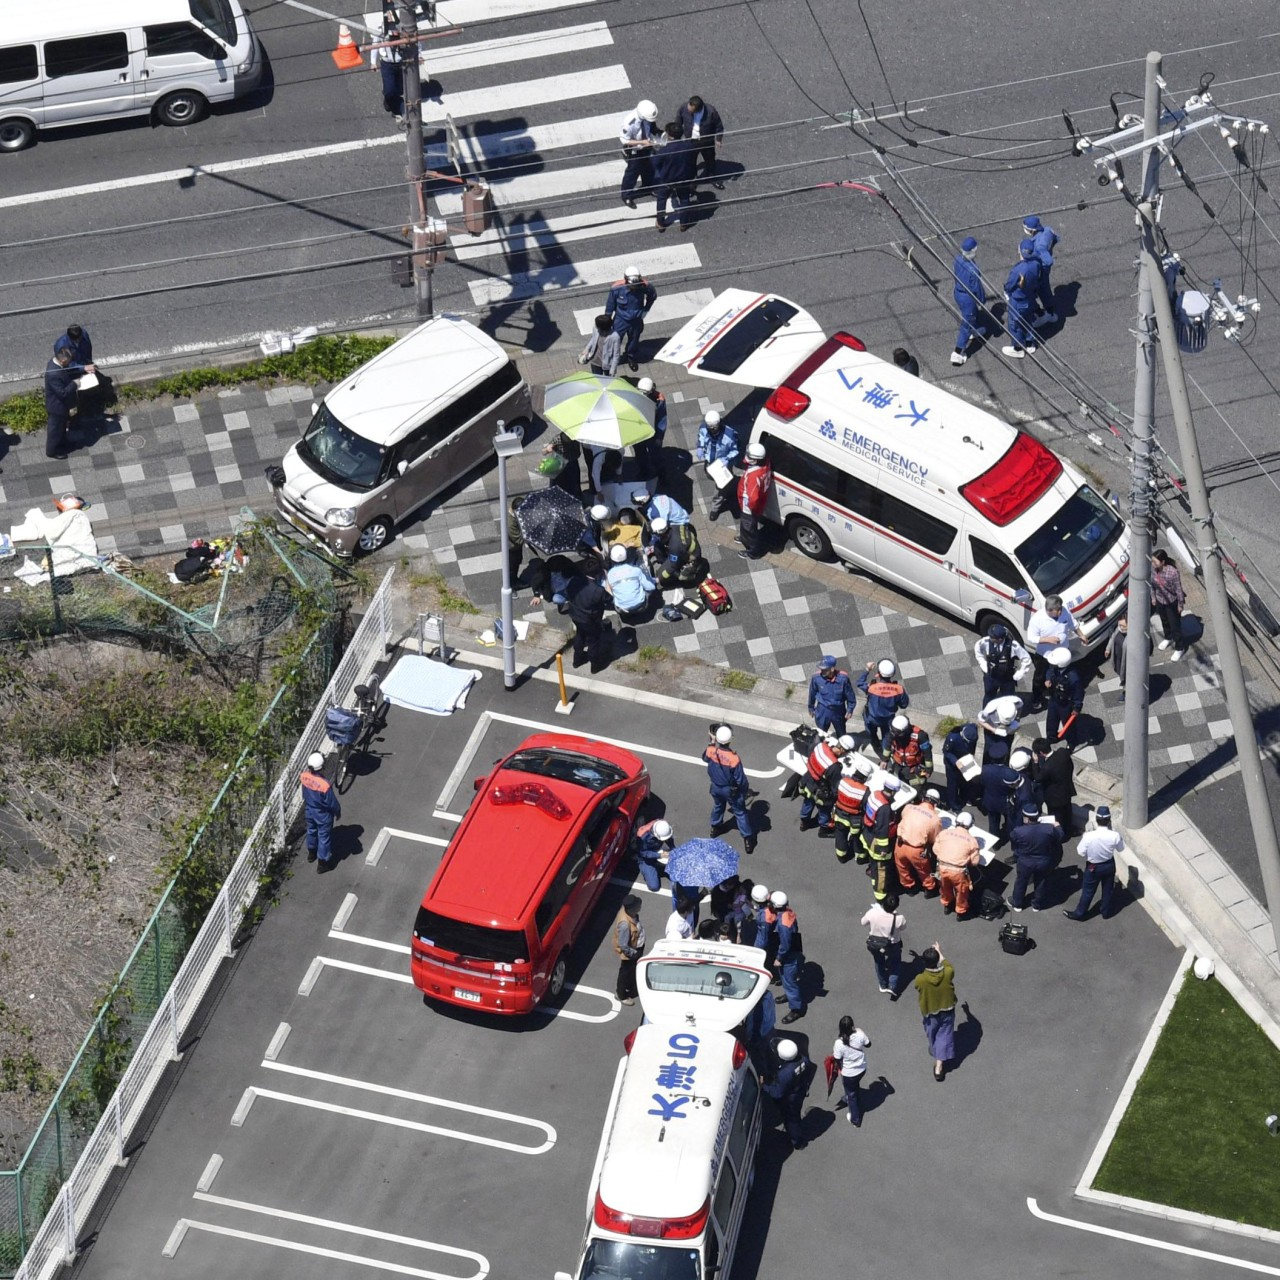 Two children killed after car ploughs into crowd of